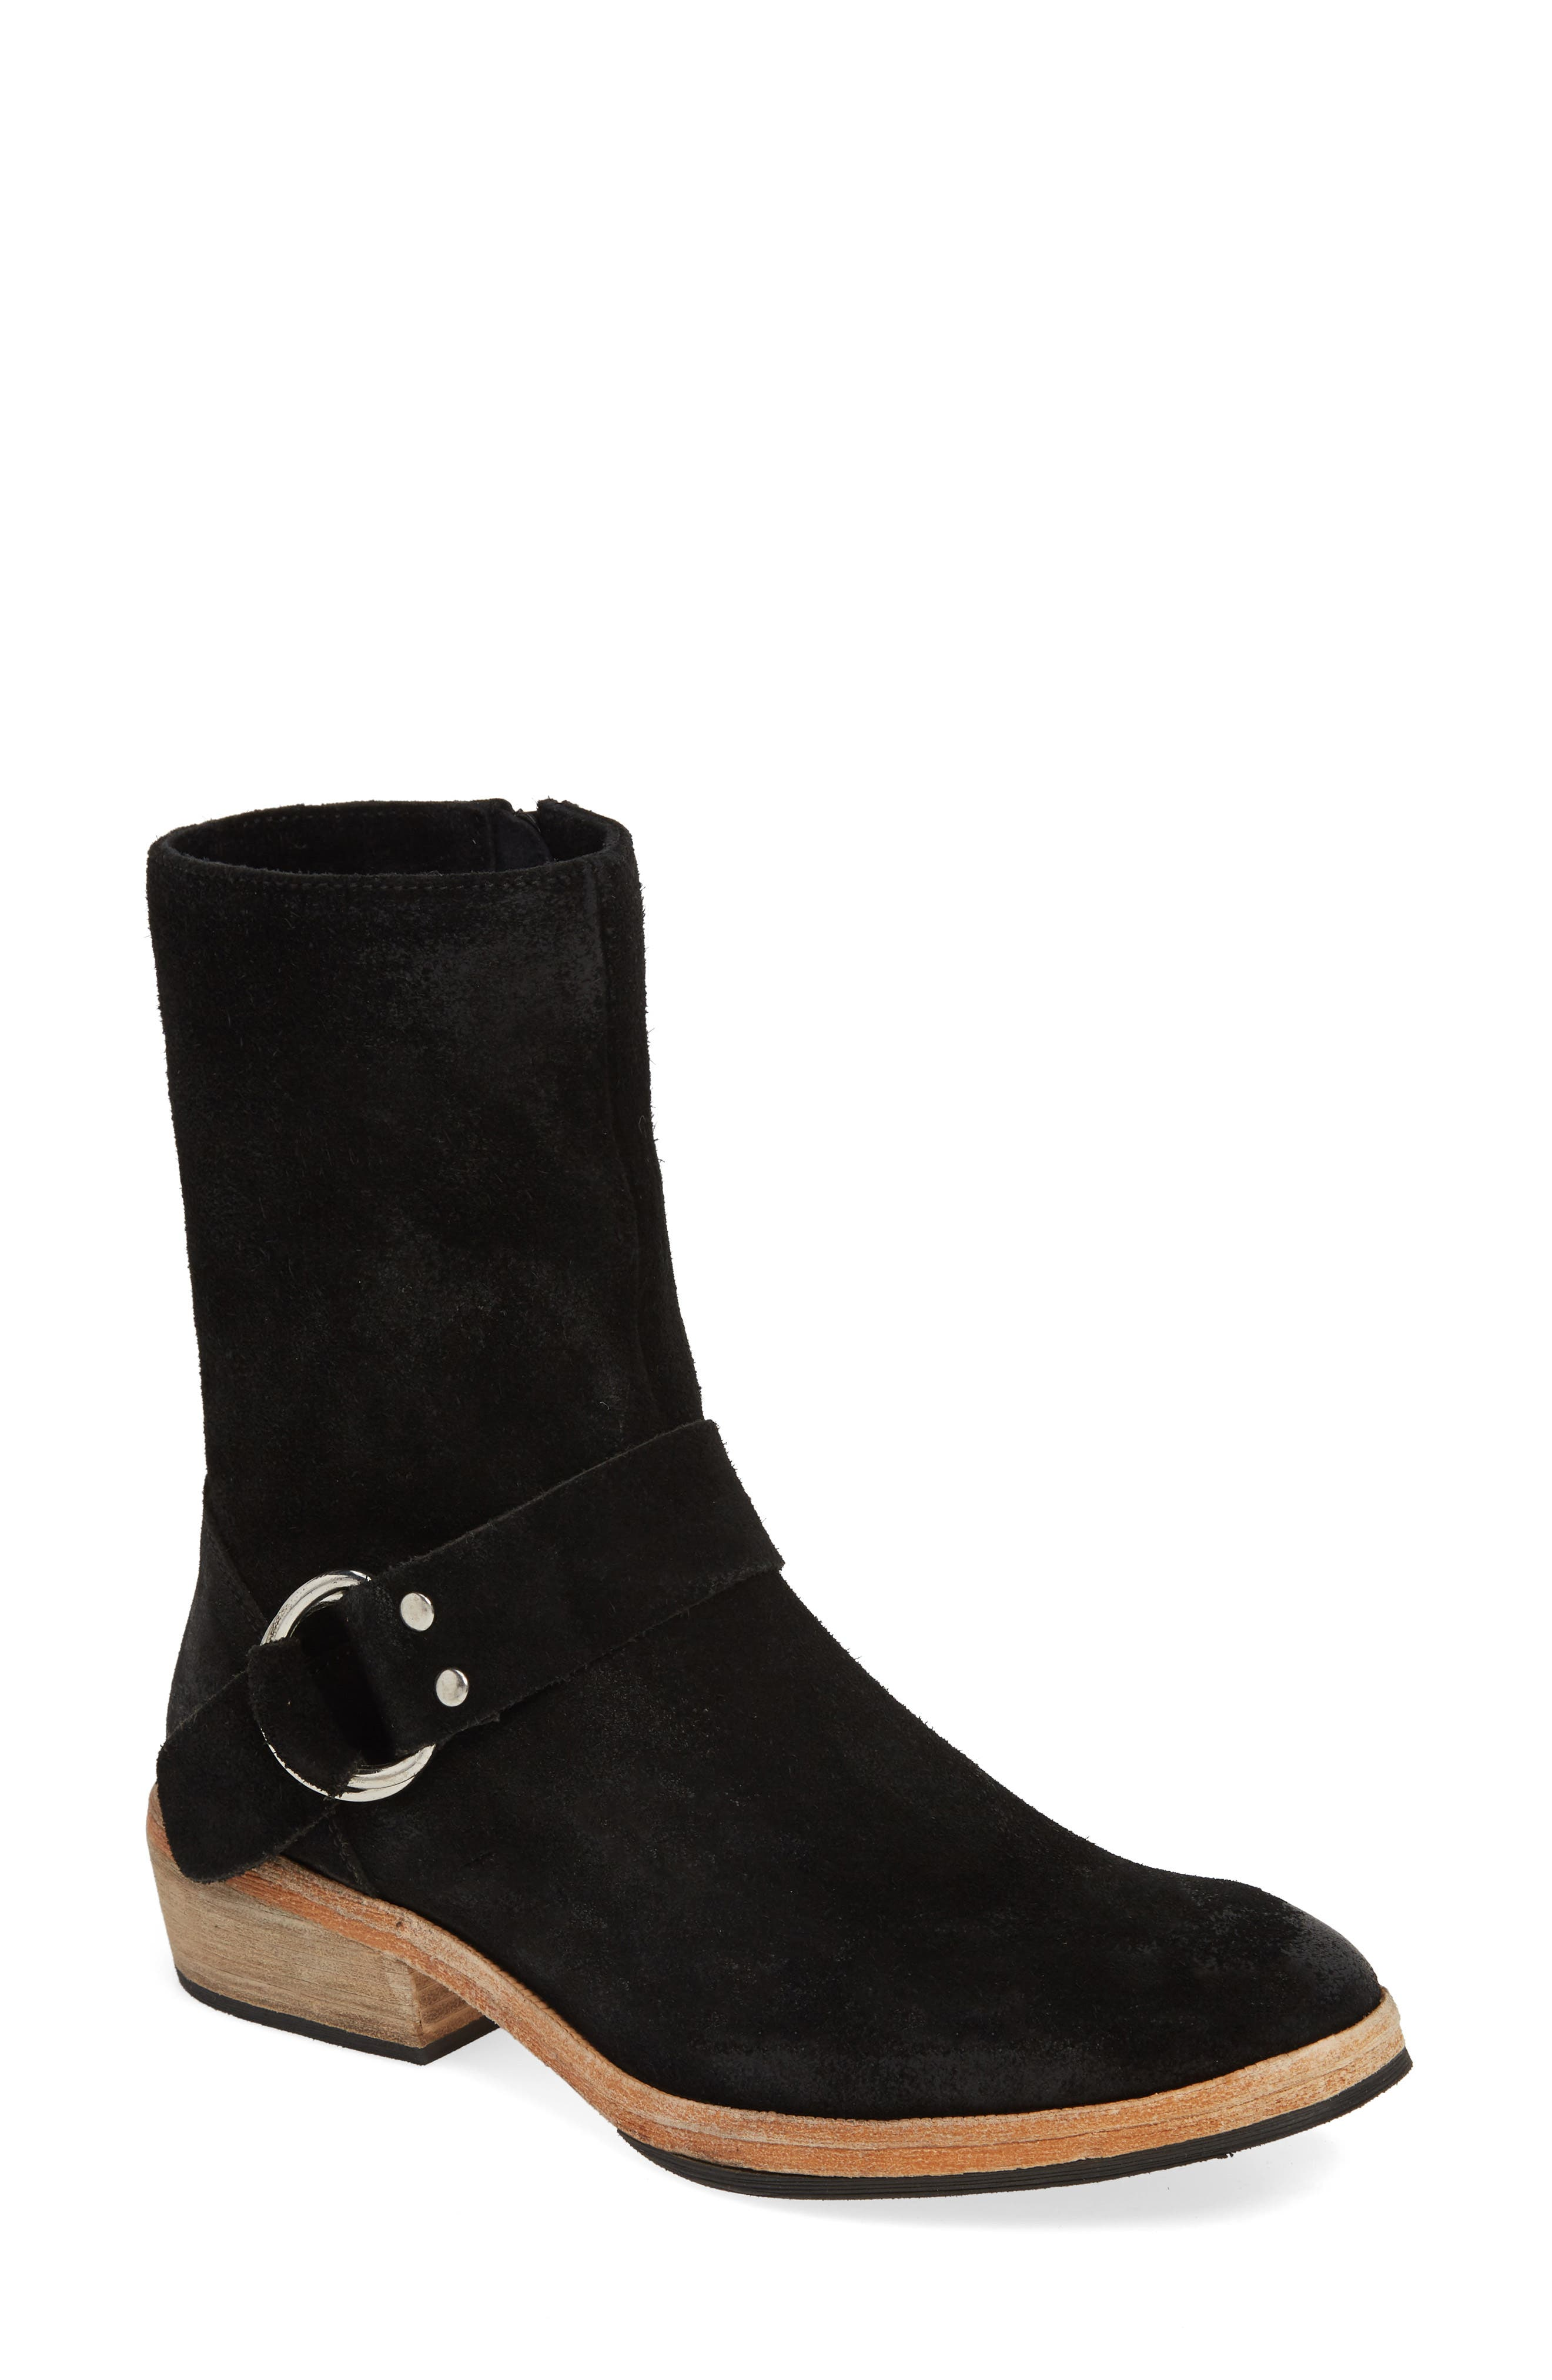 FREE PEOPLE, Venna Bootie, Main thumbnail 1, color, BLACK